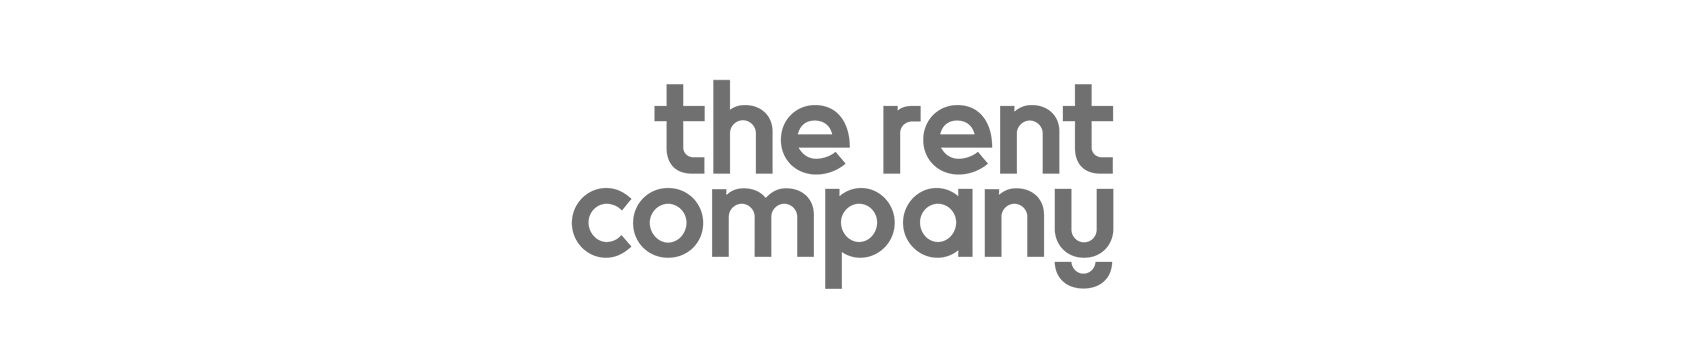 Opdrachtgevers-The rent company